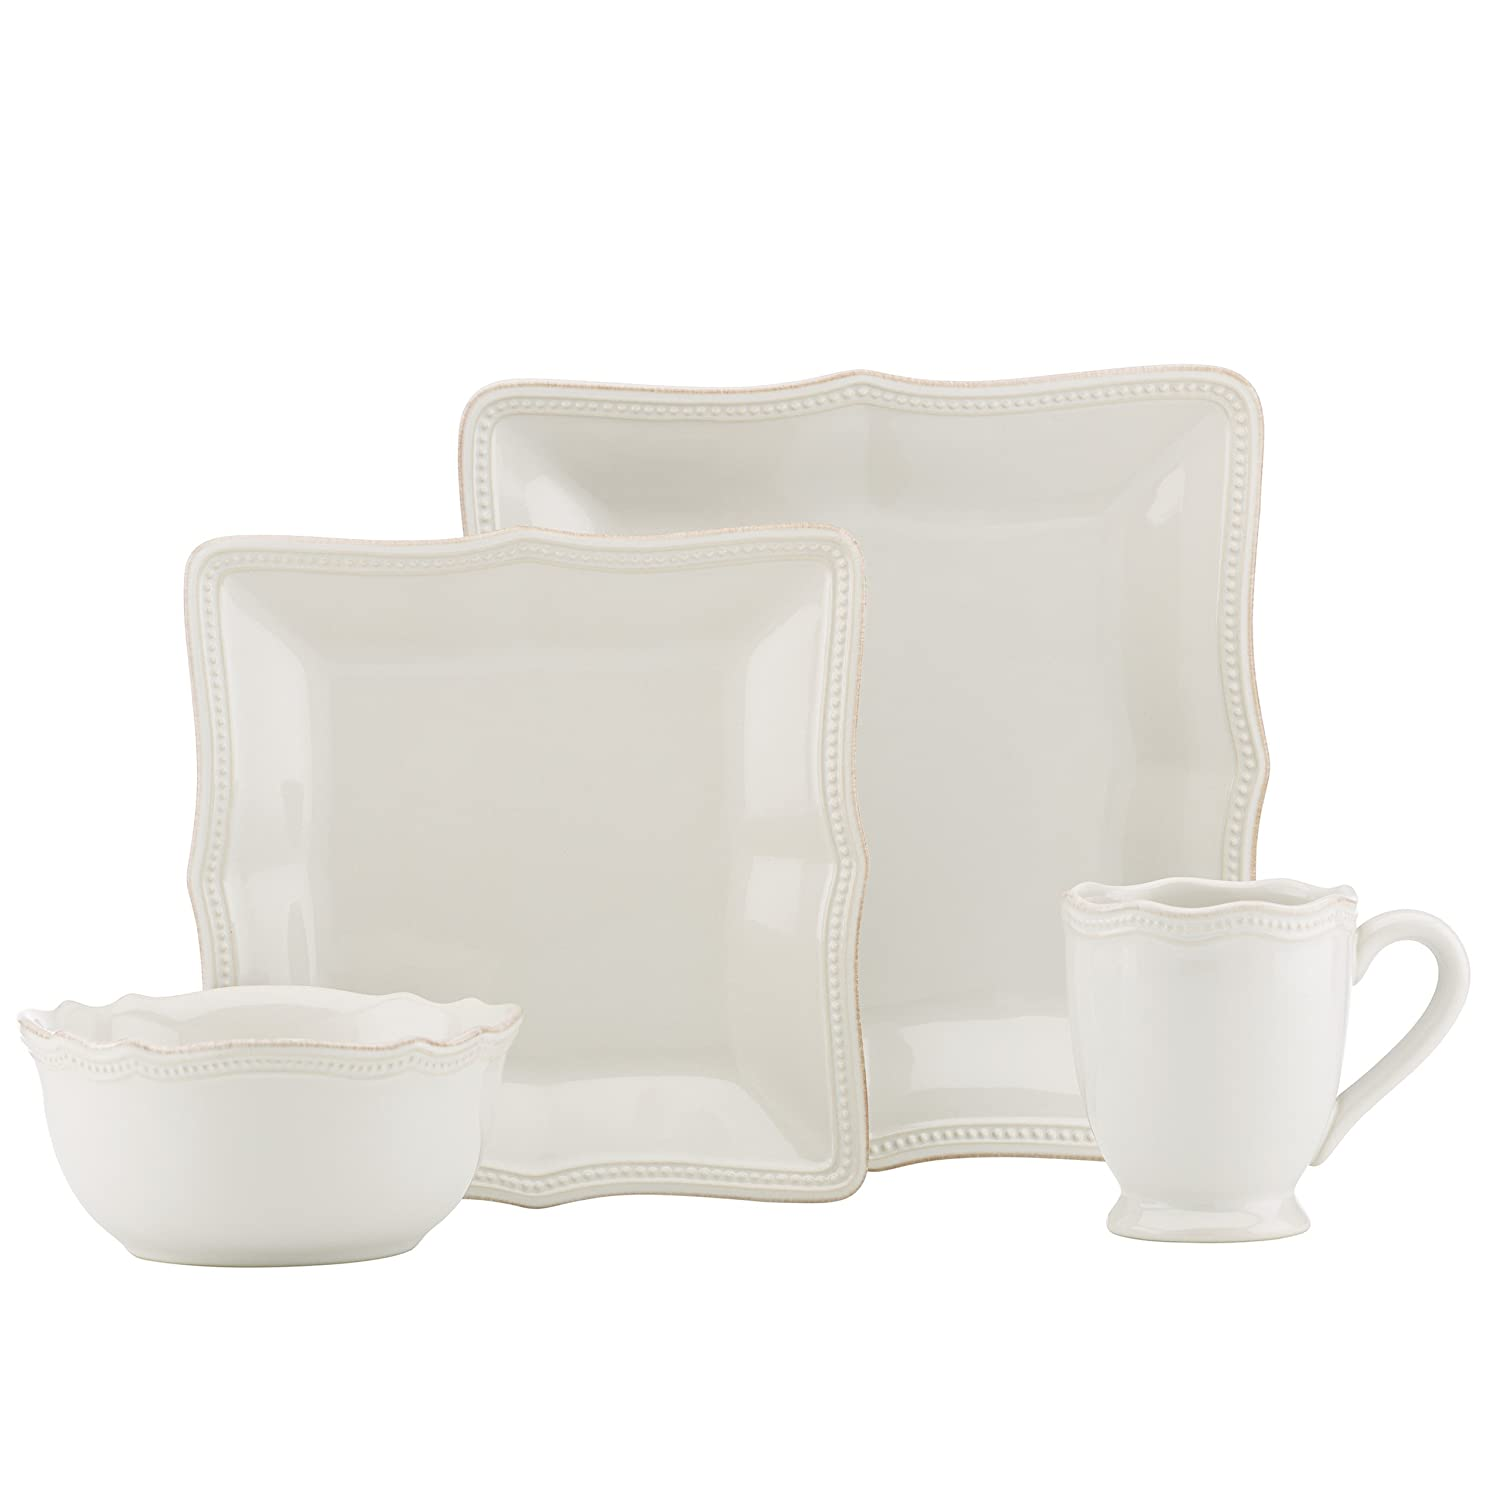 Christmas Tablescape Décor - Lenox White French Perle bead square china 4-pc place setting